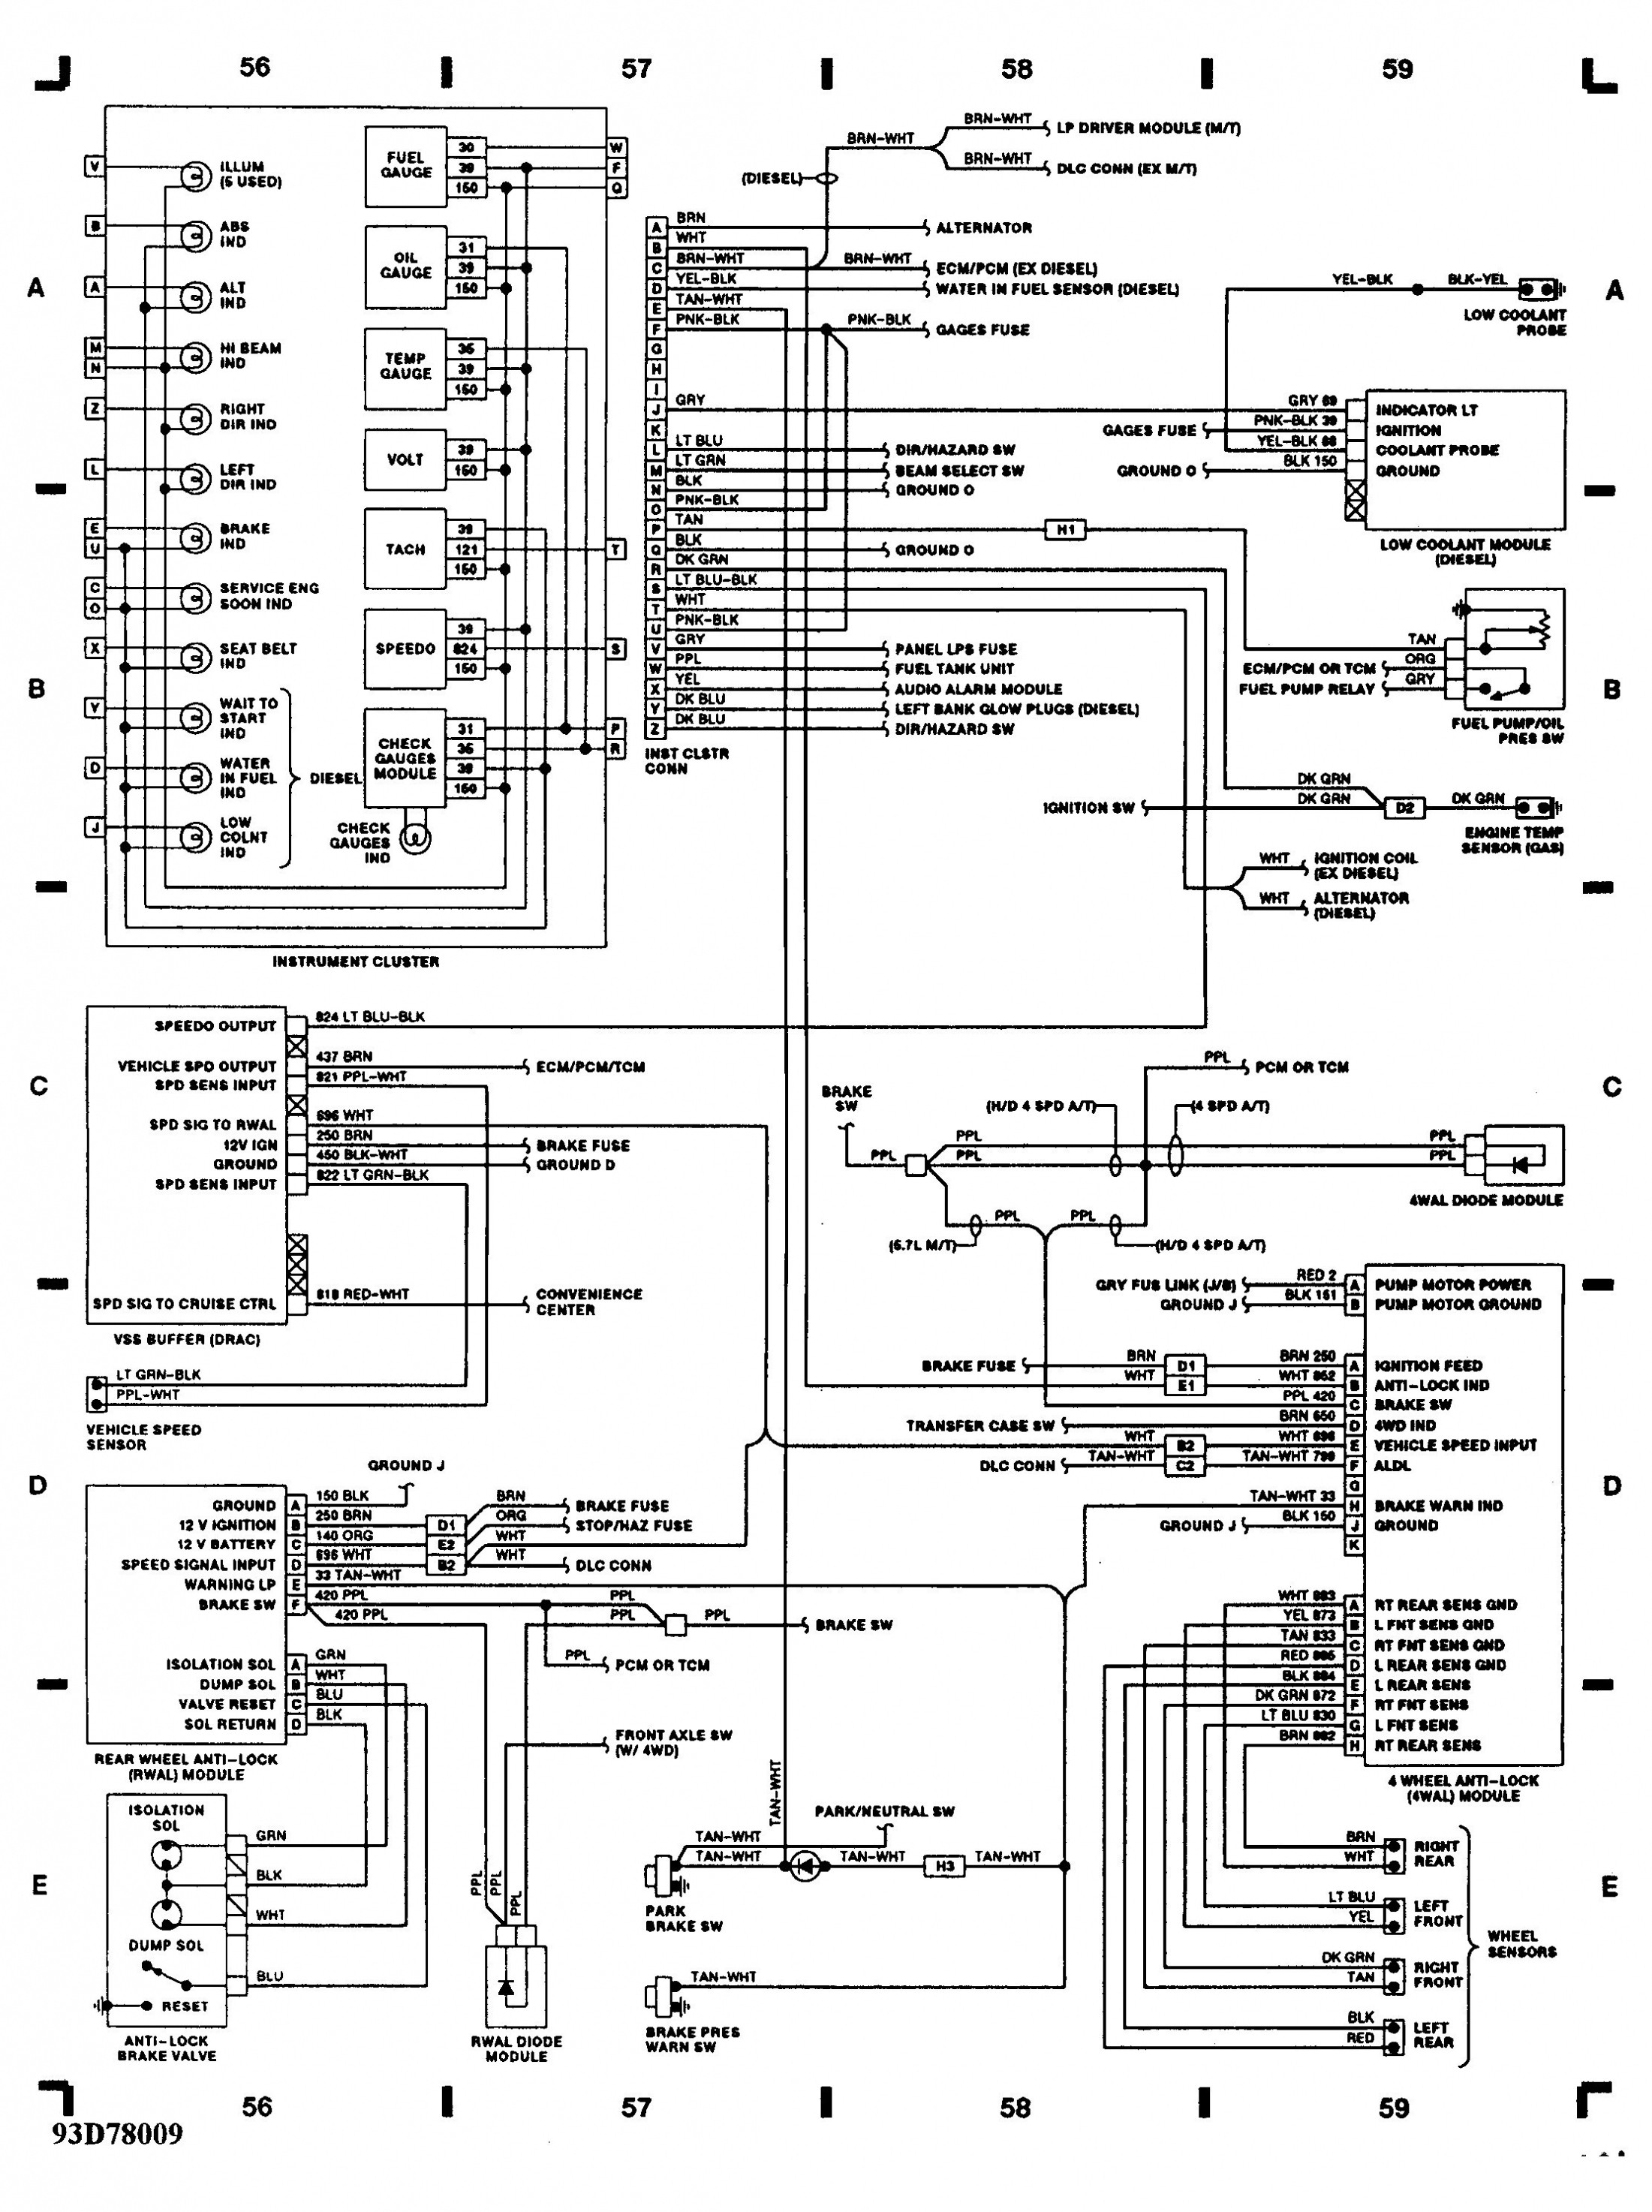 Wiring Diagram for 2001 Chevy S10 4.3 Engine Diagram] Gm 3 1 Engine Diagram Full Version Hd Quality Of Wiring Diagram for 2001 Chevy S10 4.3 Engine